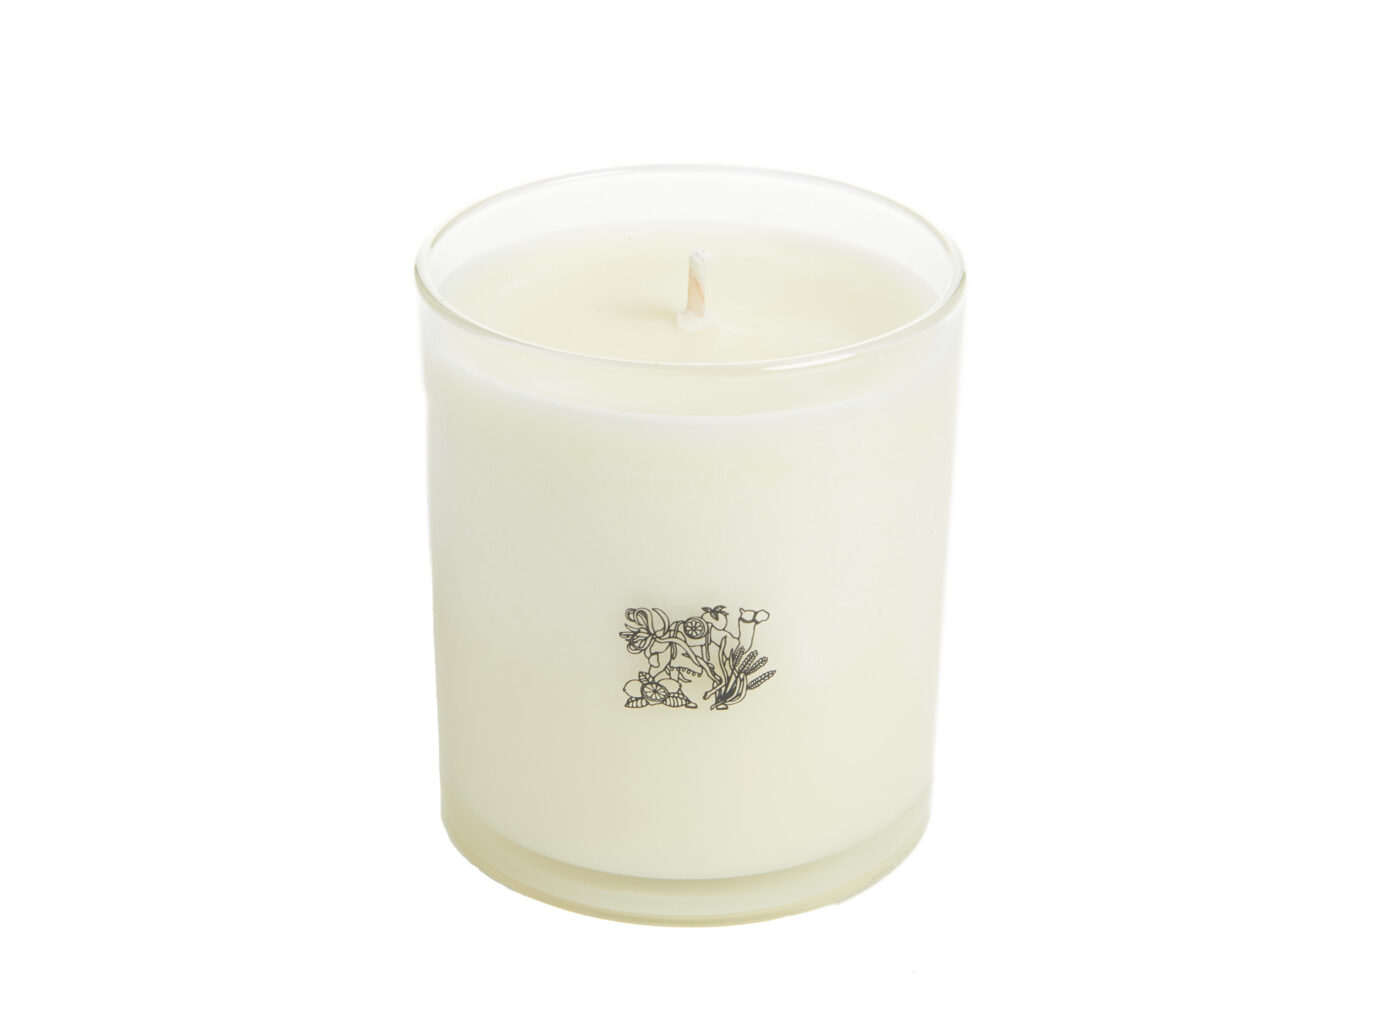 Apottheke Fragrance Scented Candle